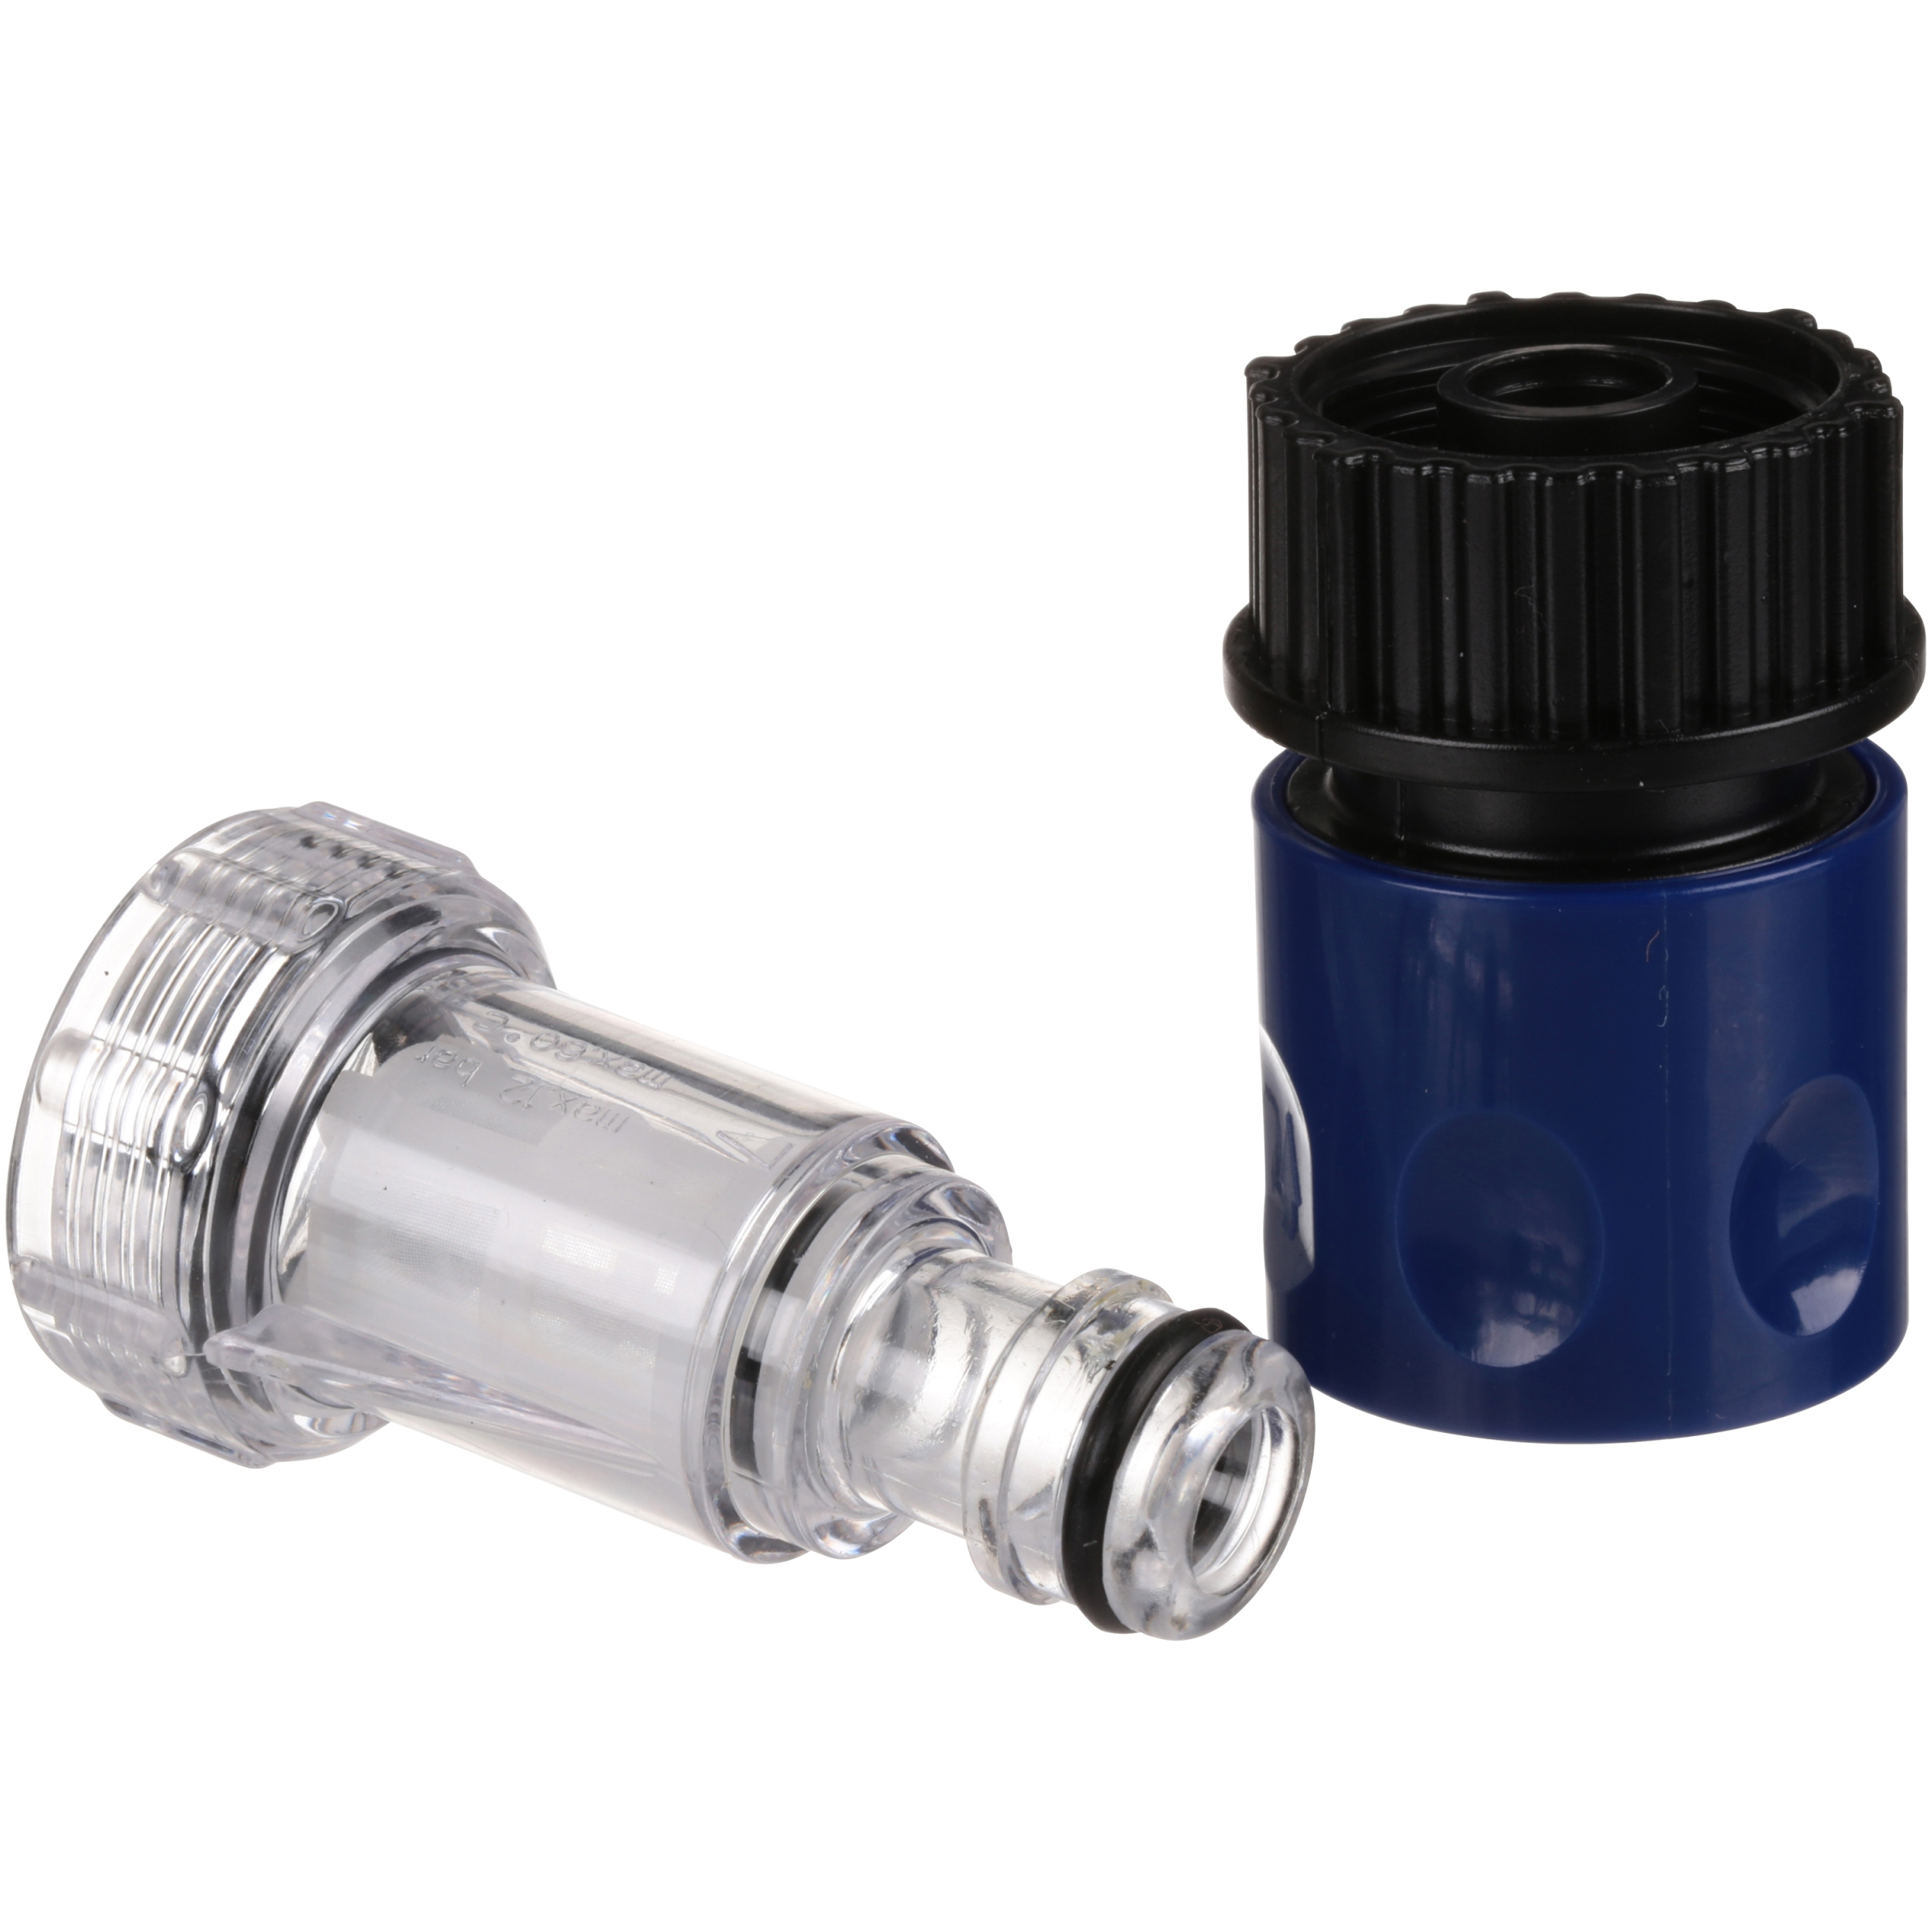 Blue Clean® Pressure Washers Universal Quick Connect Garden Hose Adapter & Filter 2 pc Pack